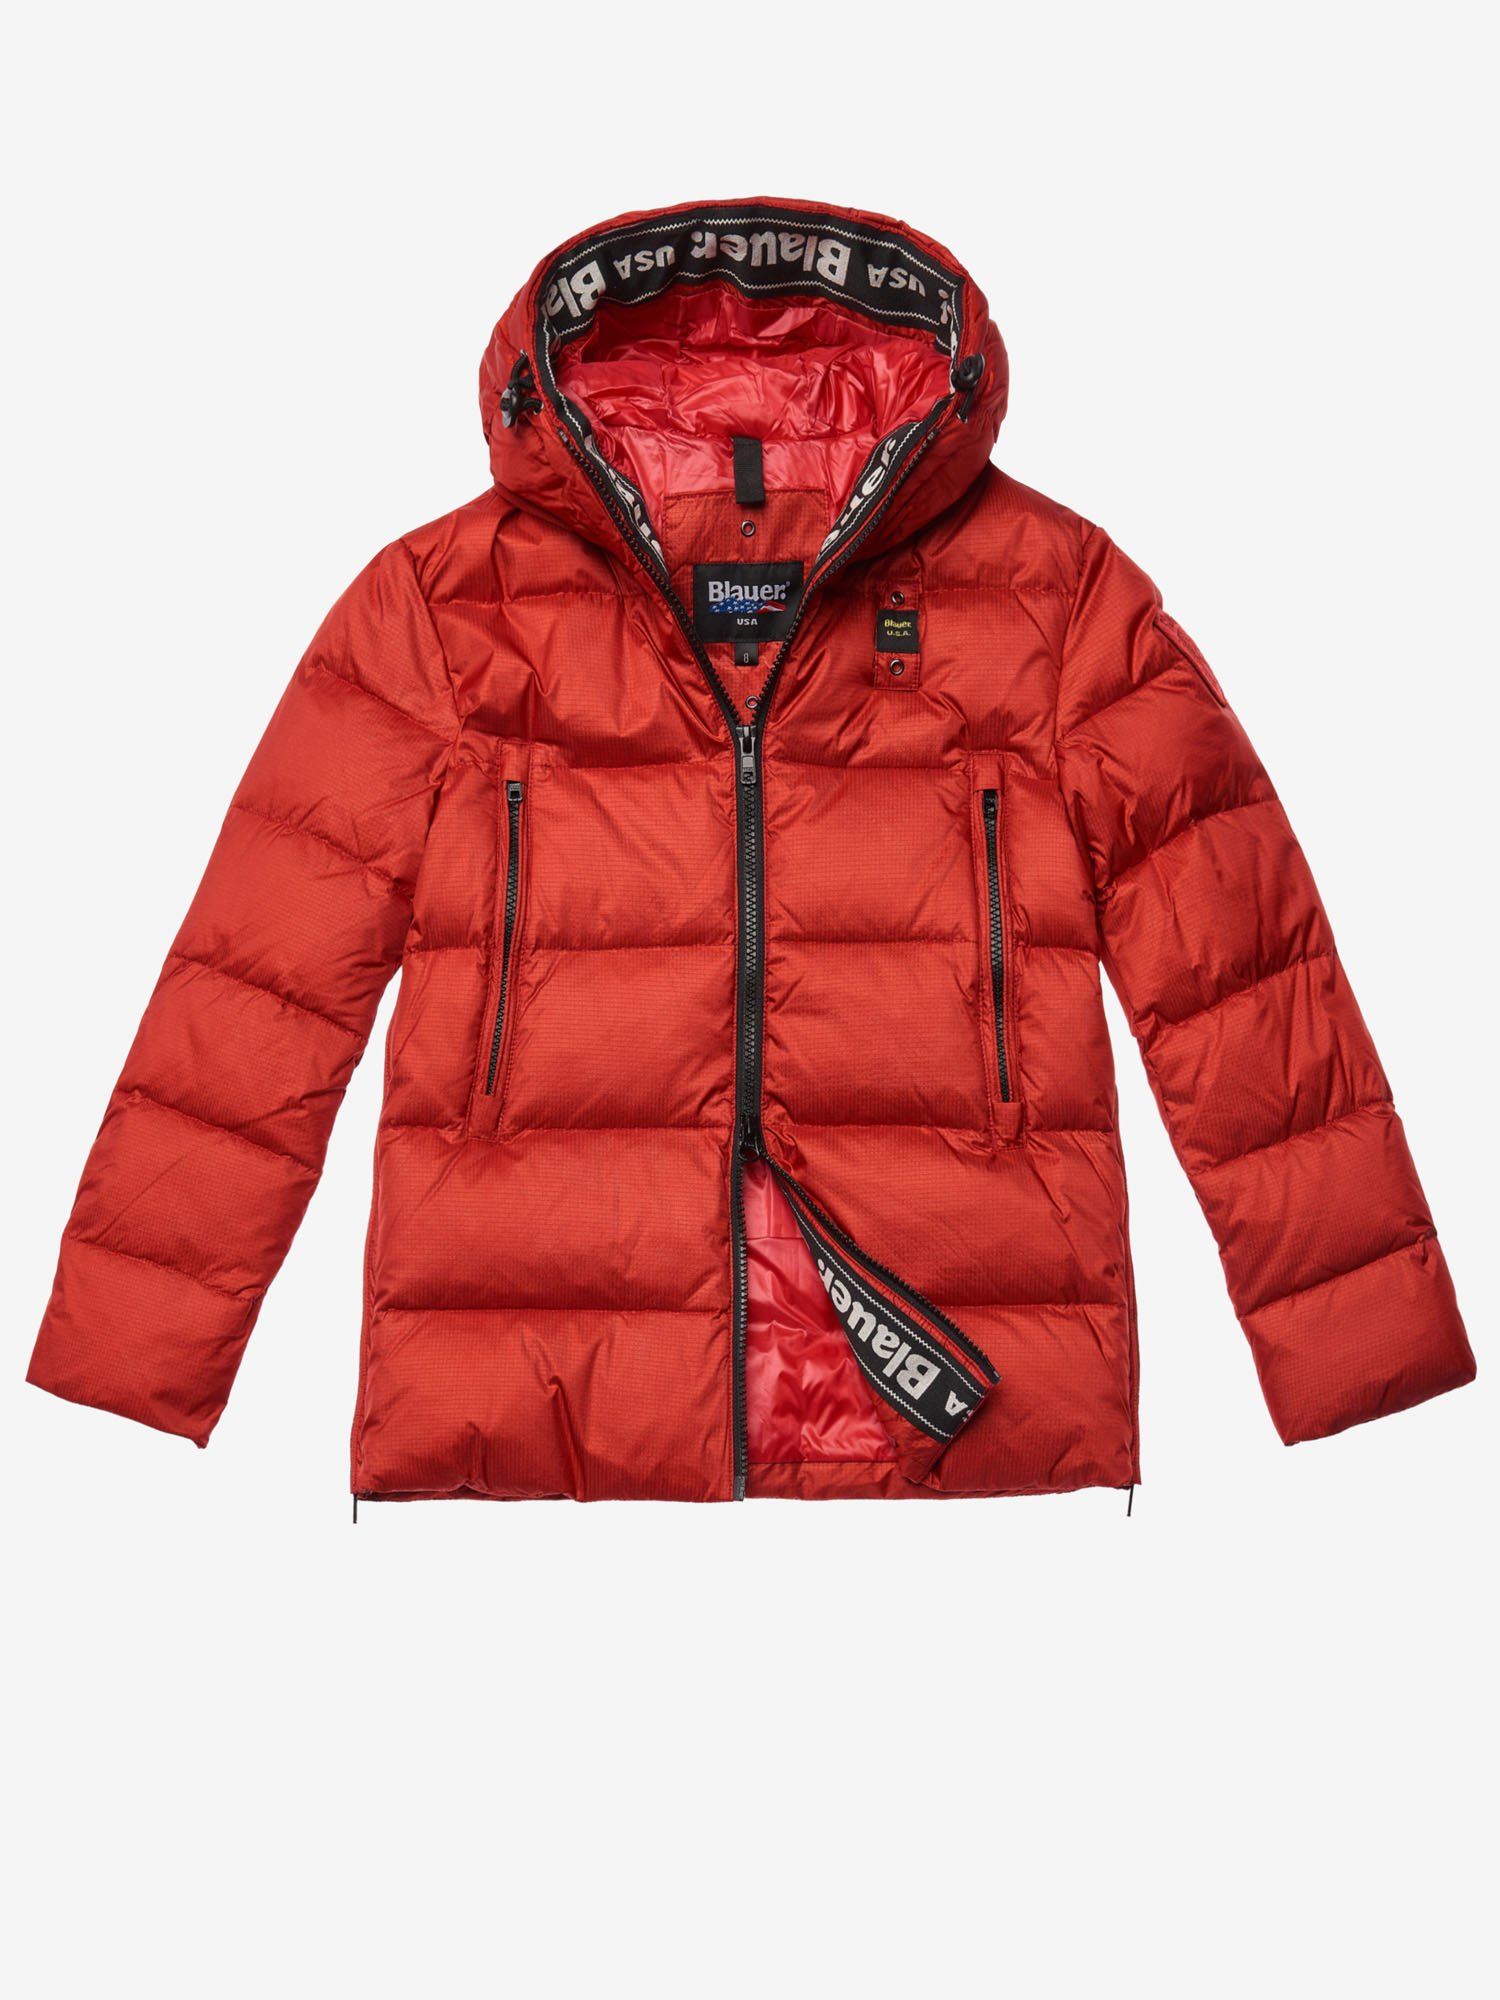 FRASER IRIDESCENT DOWN JACKET - Blauer